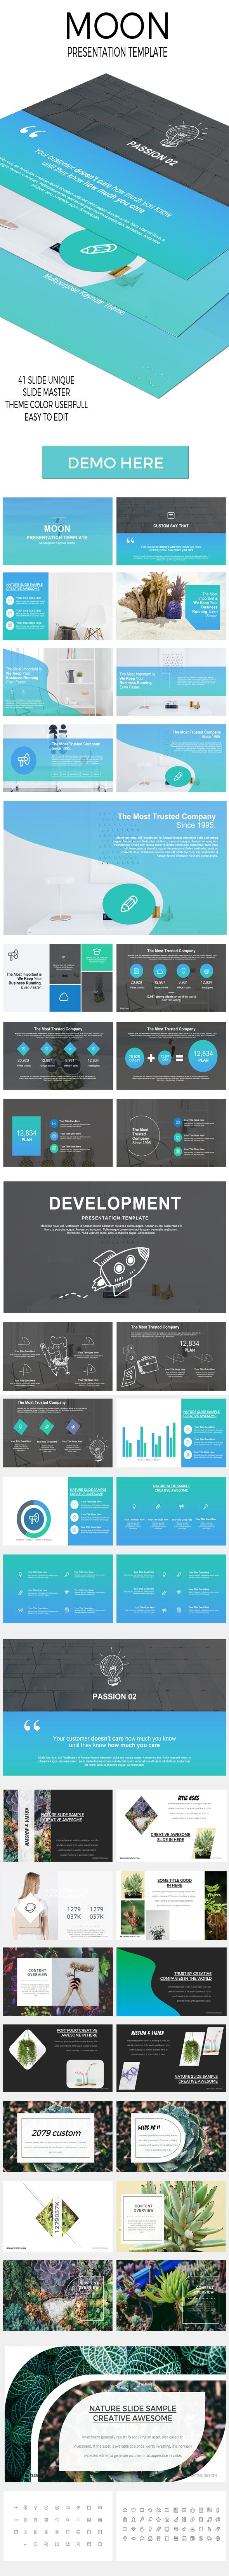 Great 1 Page Resume Sample Big 10 Envelope Template Clean 10 Label Template 100 Free Resume Builder Old 1099 Contract Template Green13 Birthday Invitation Templates 17 Best Images About PowerPoint Template On Pinterest | Decks ..